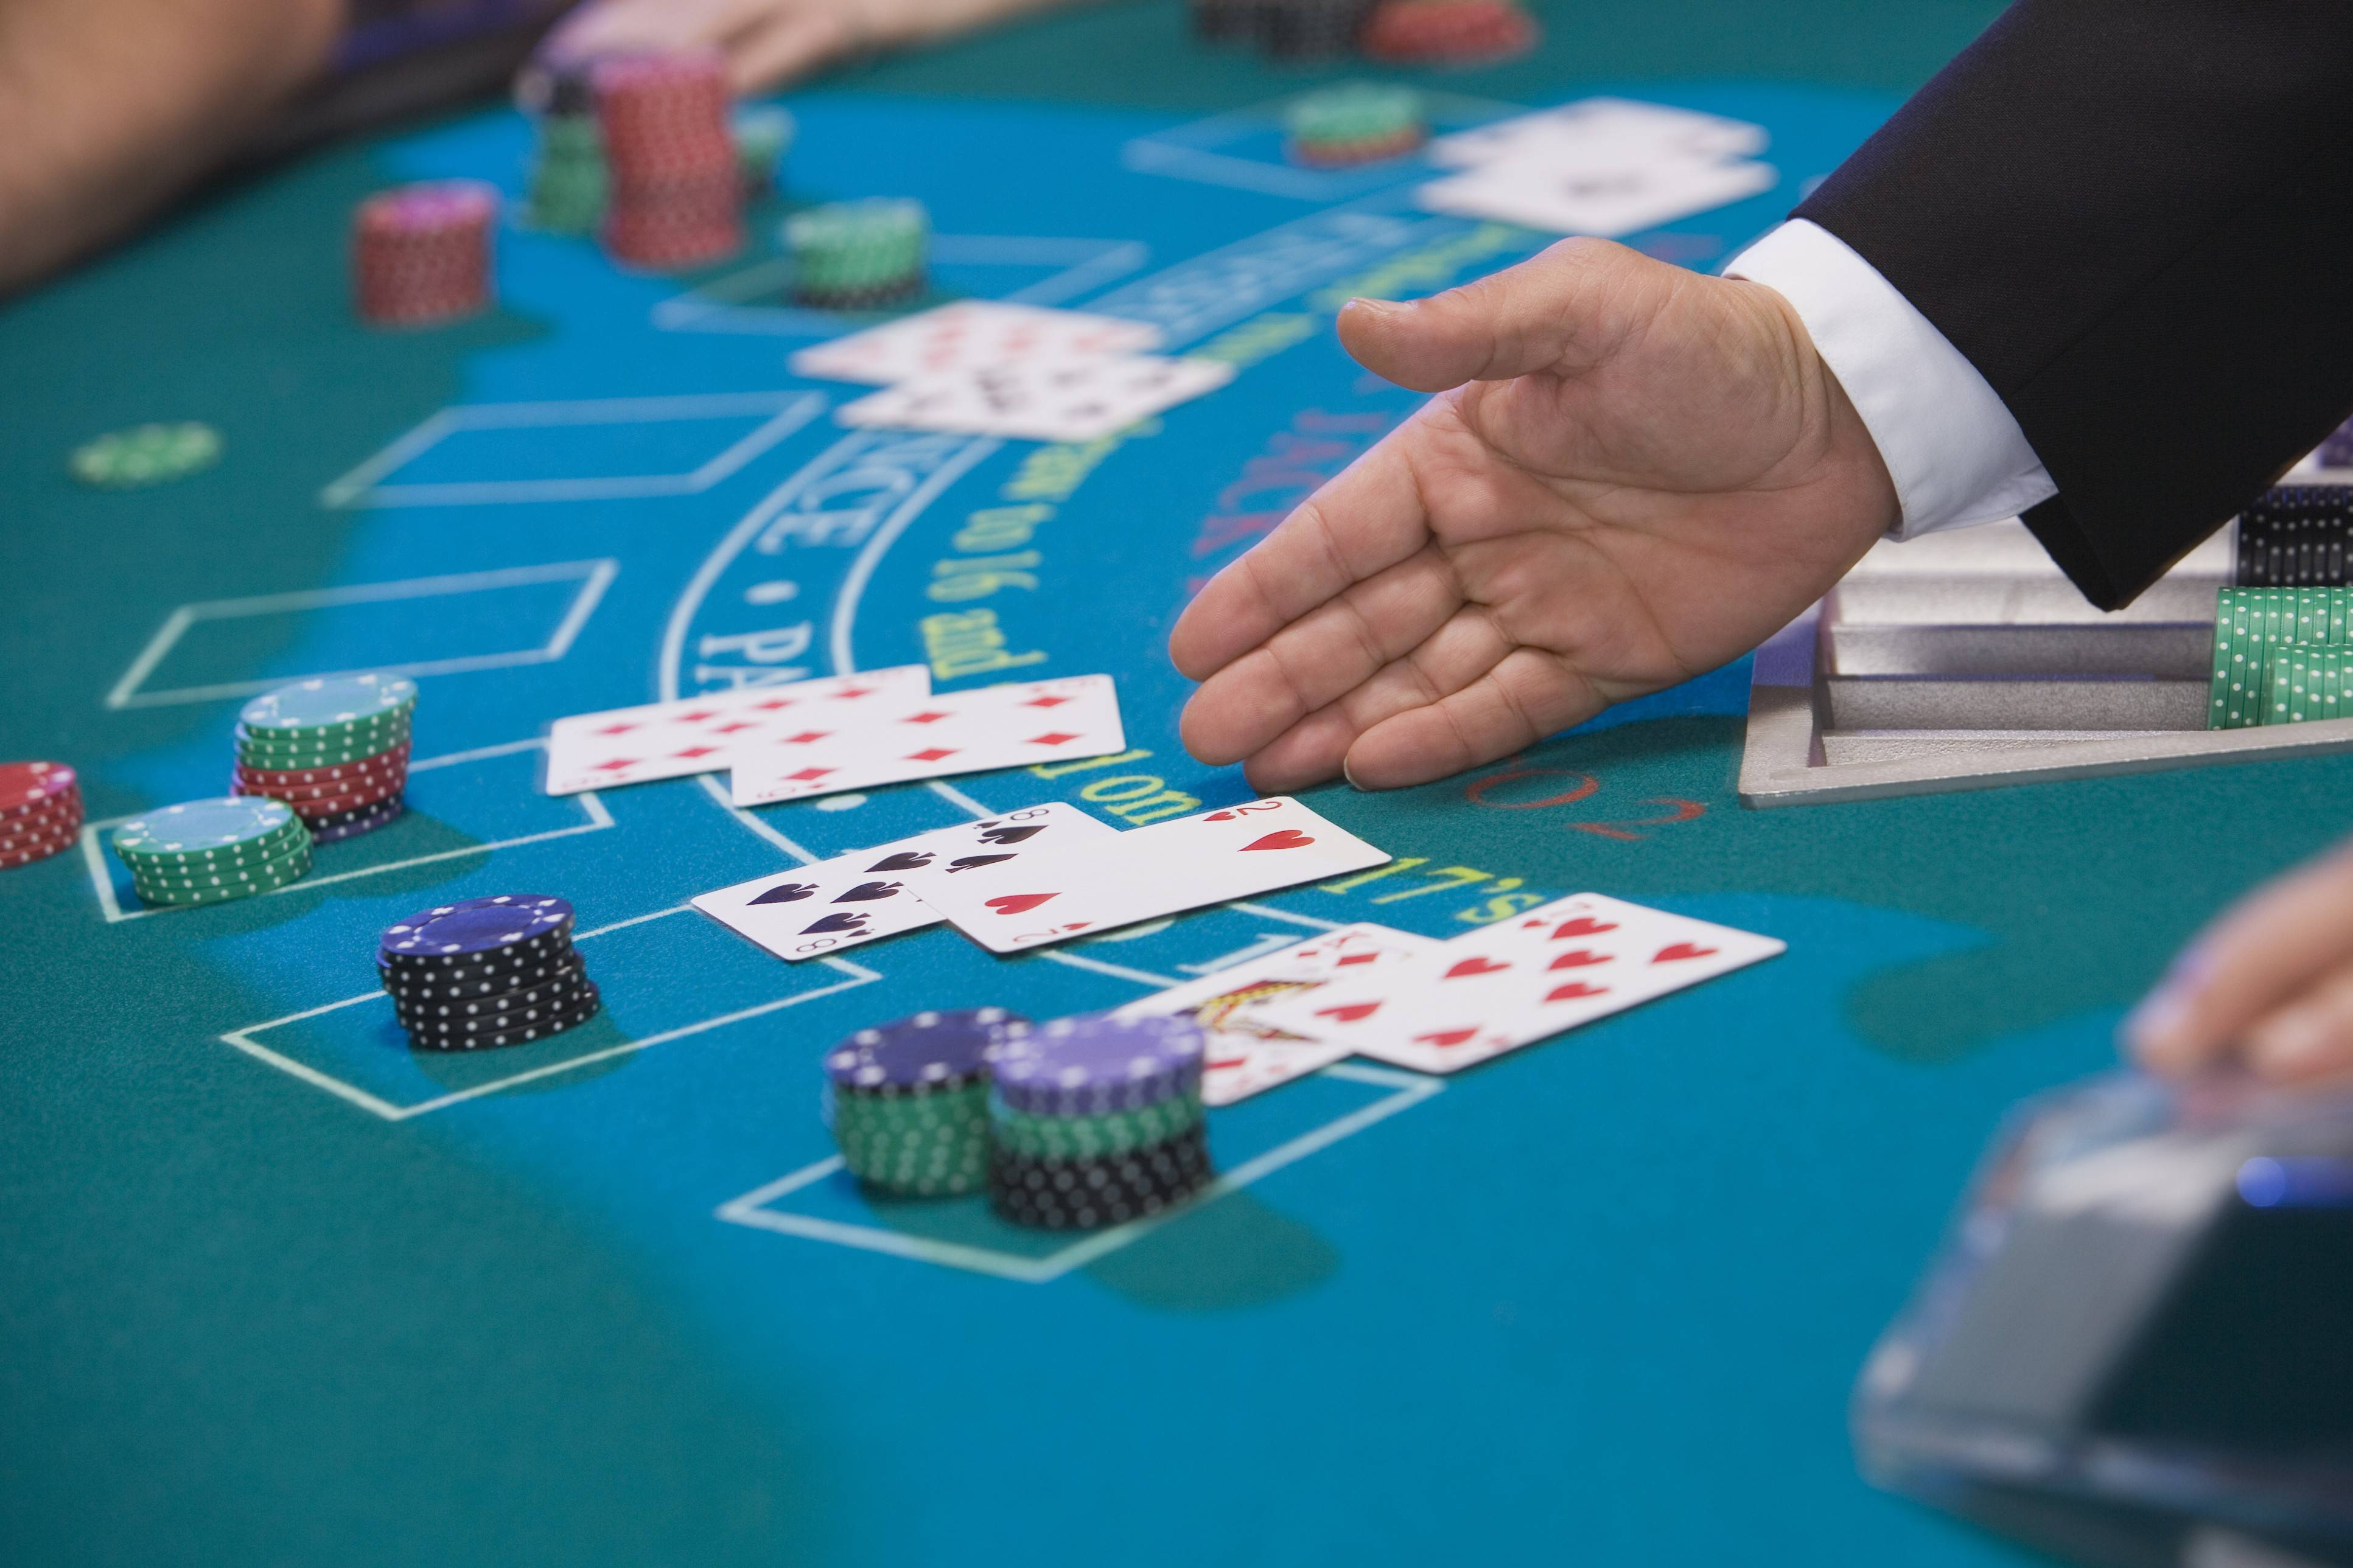 Arlington Park would 'welcome' table games, slots